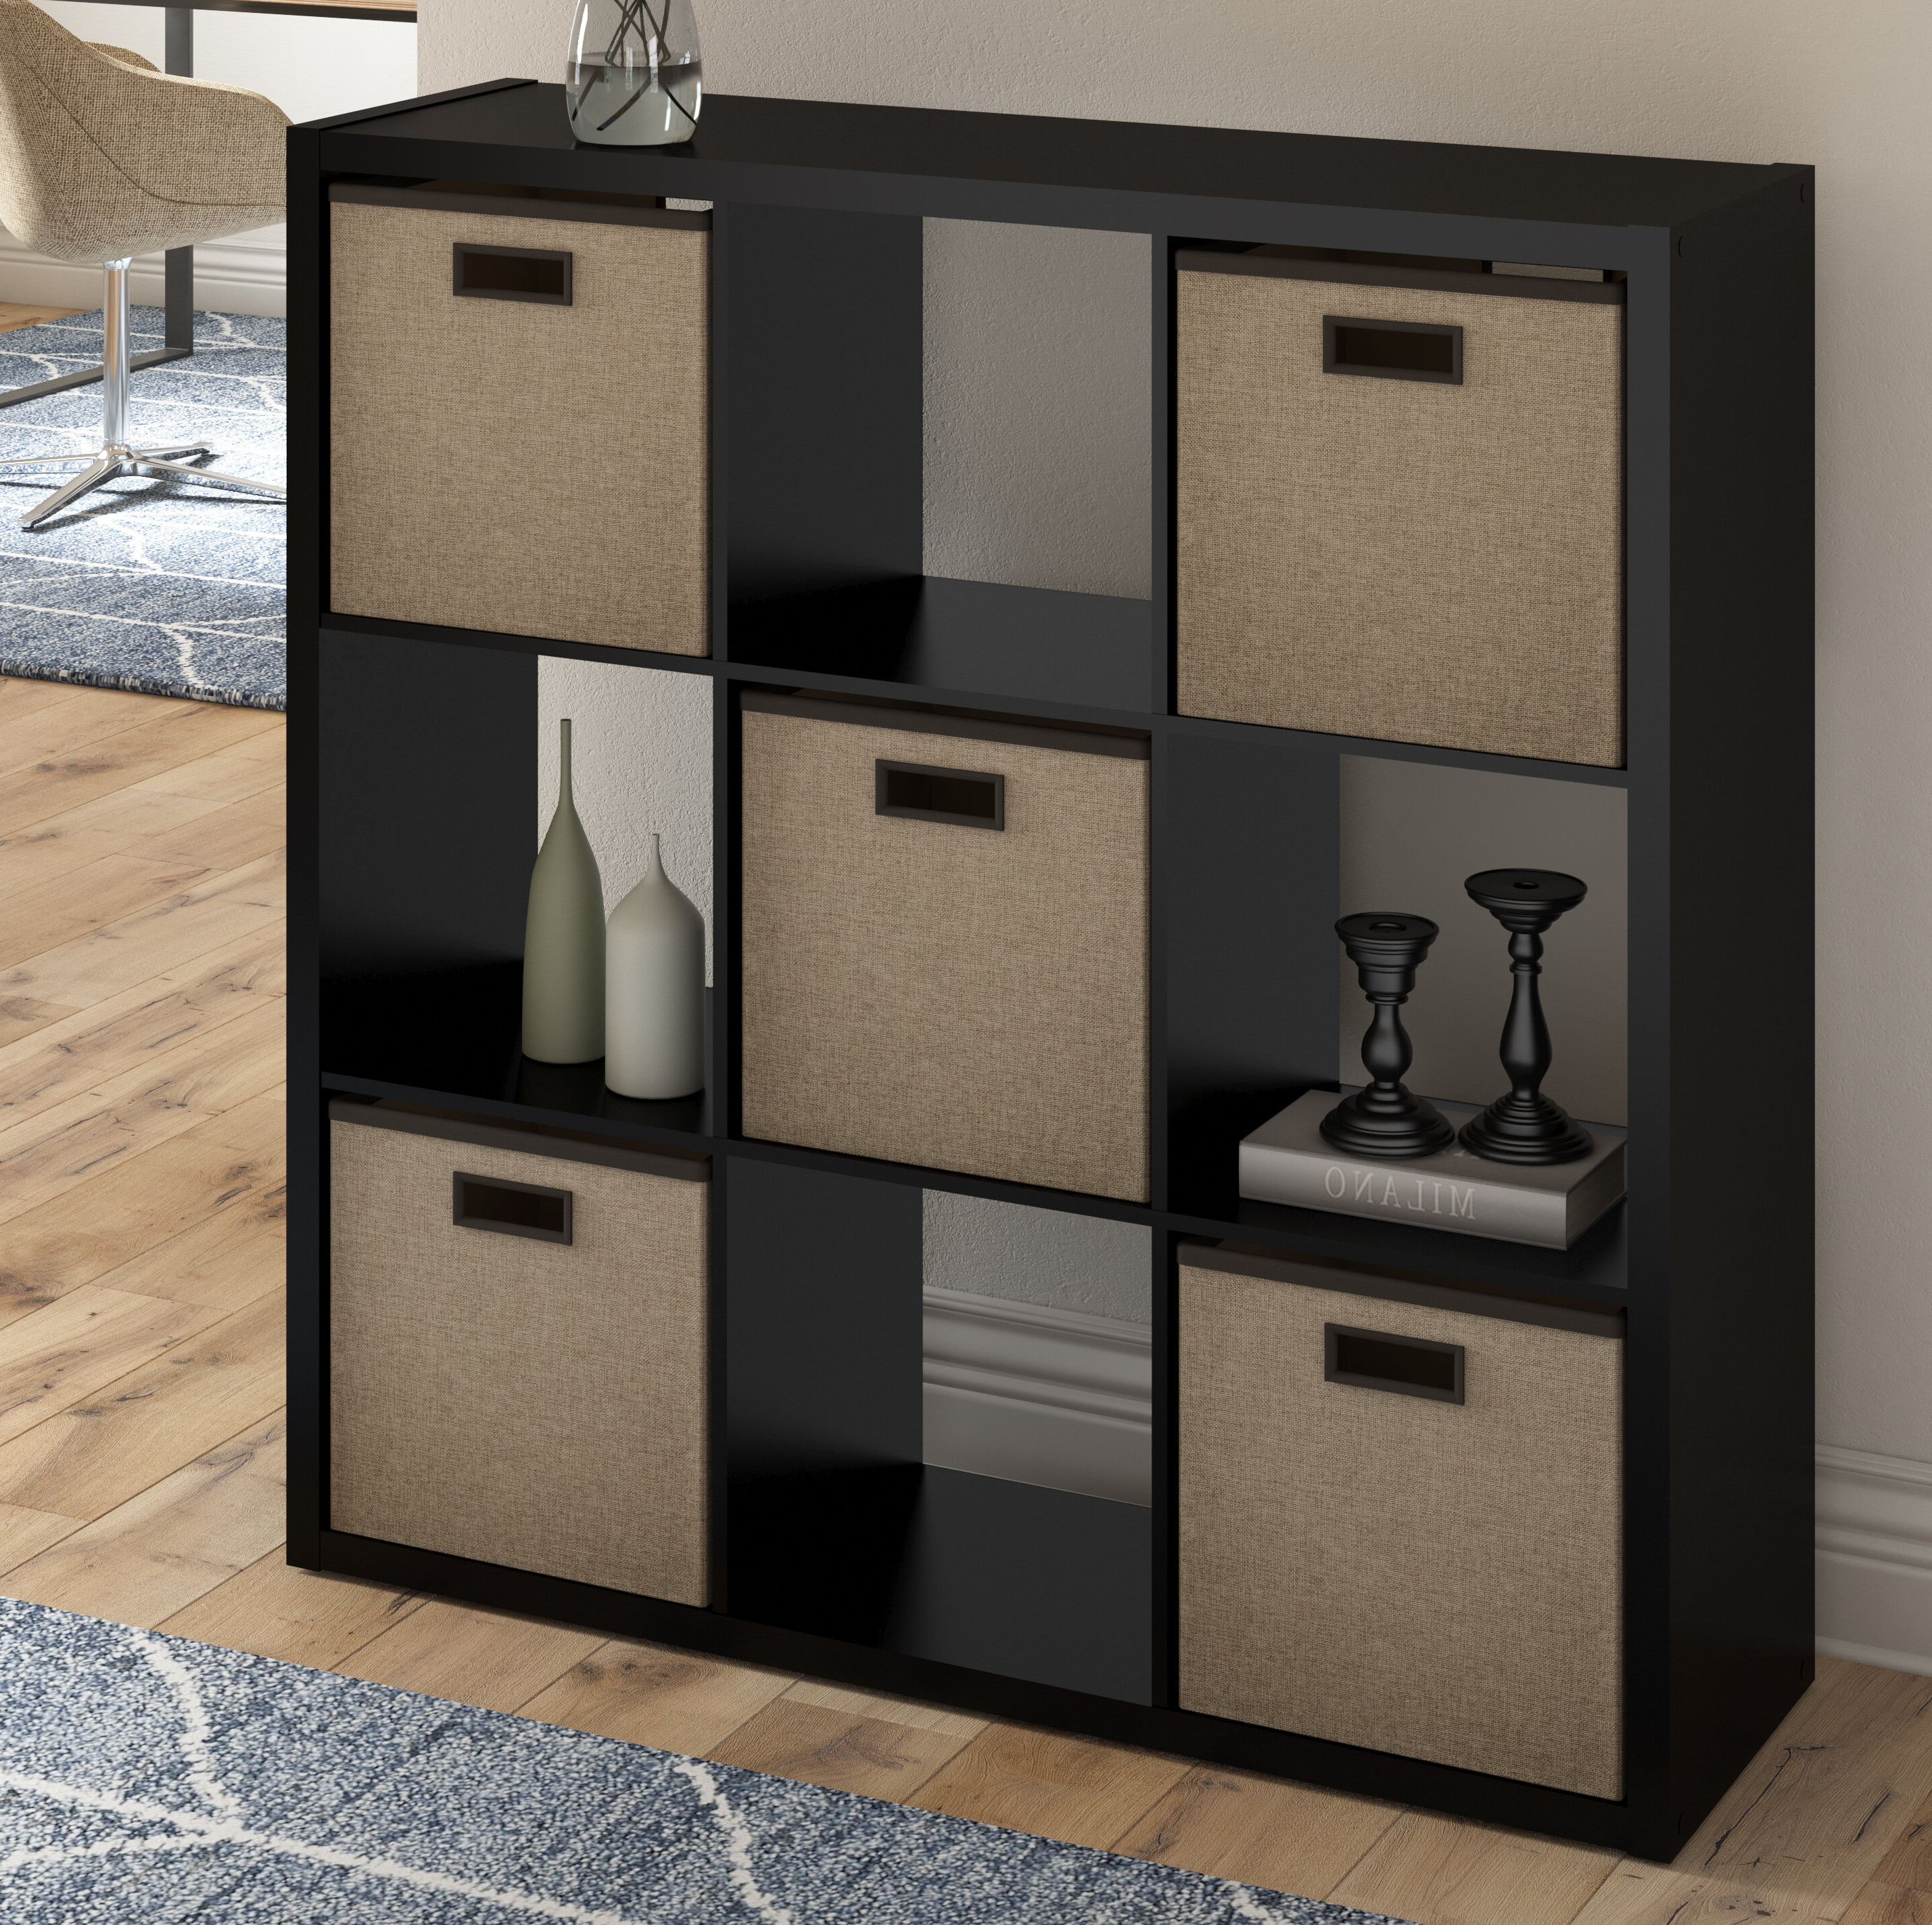 Decorative Storage Cube Bookcases With Famous Decorative Cube Bookcase (Gallery 9 of 20)